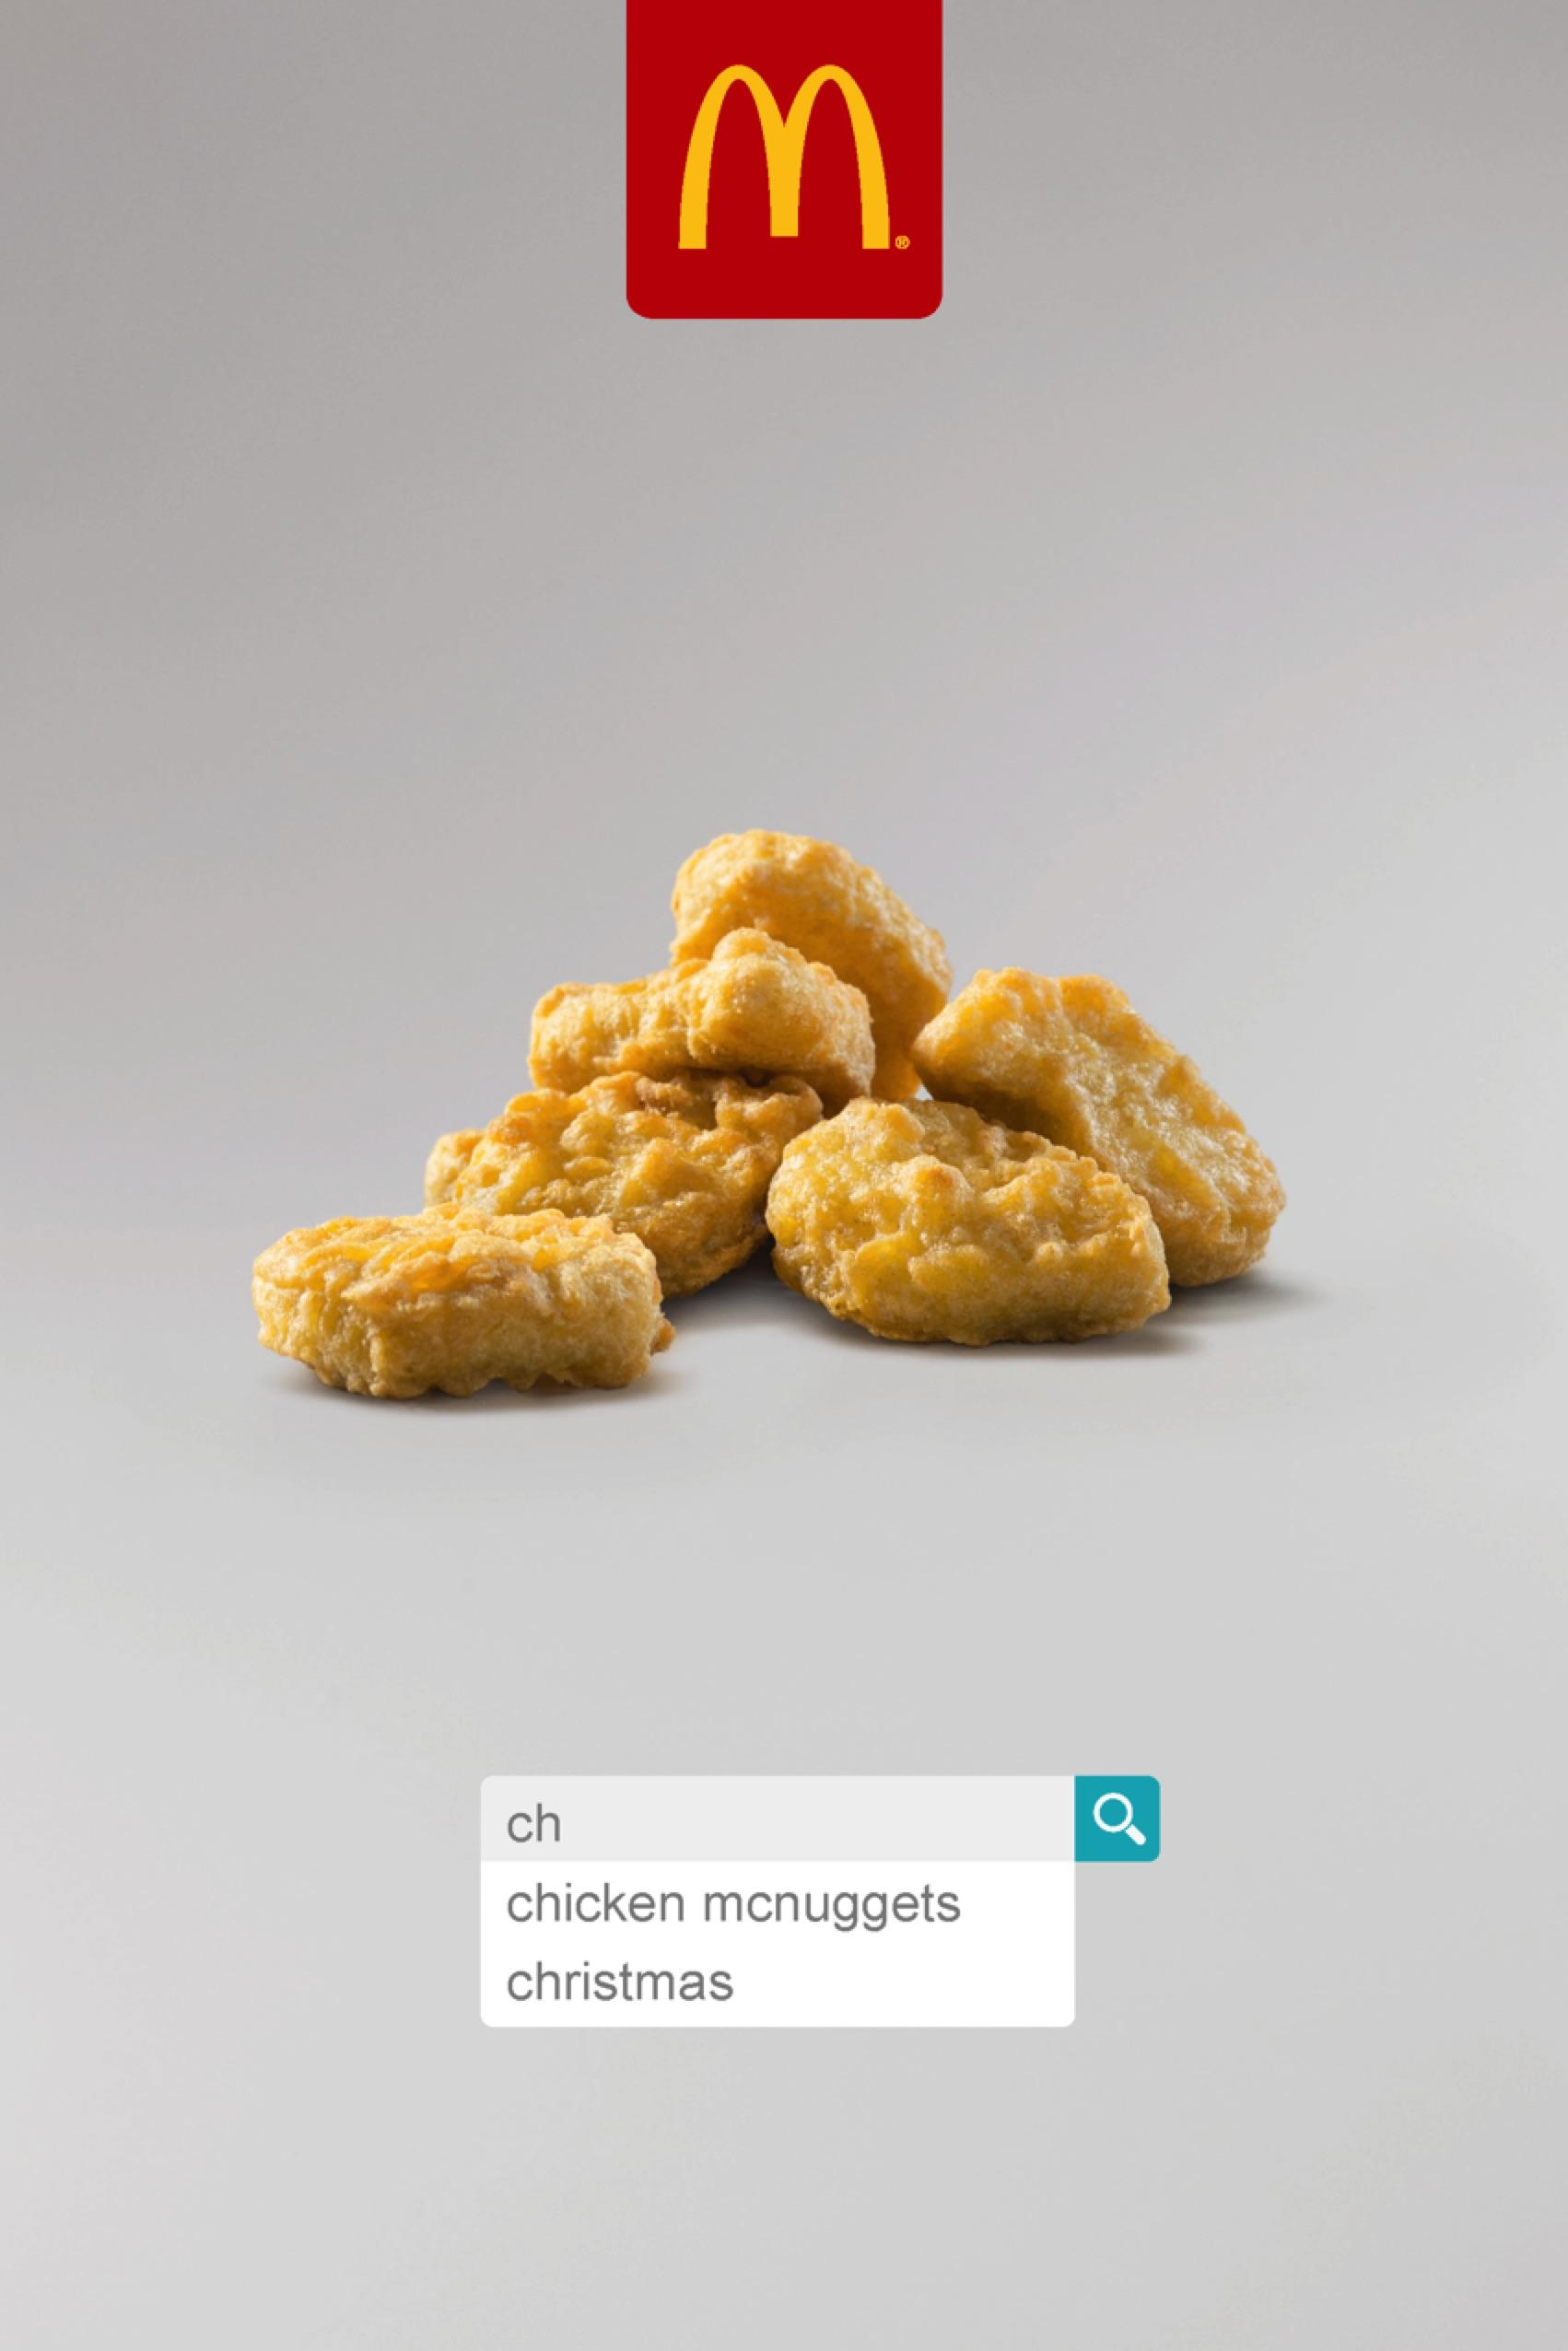 McDonald's Outdoor Ad - Chicken McNuggets